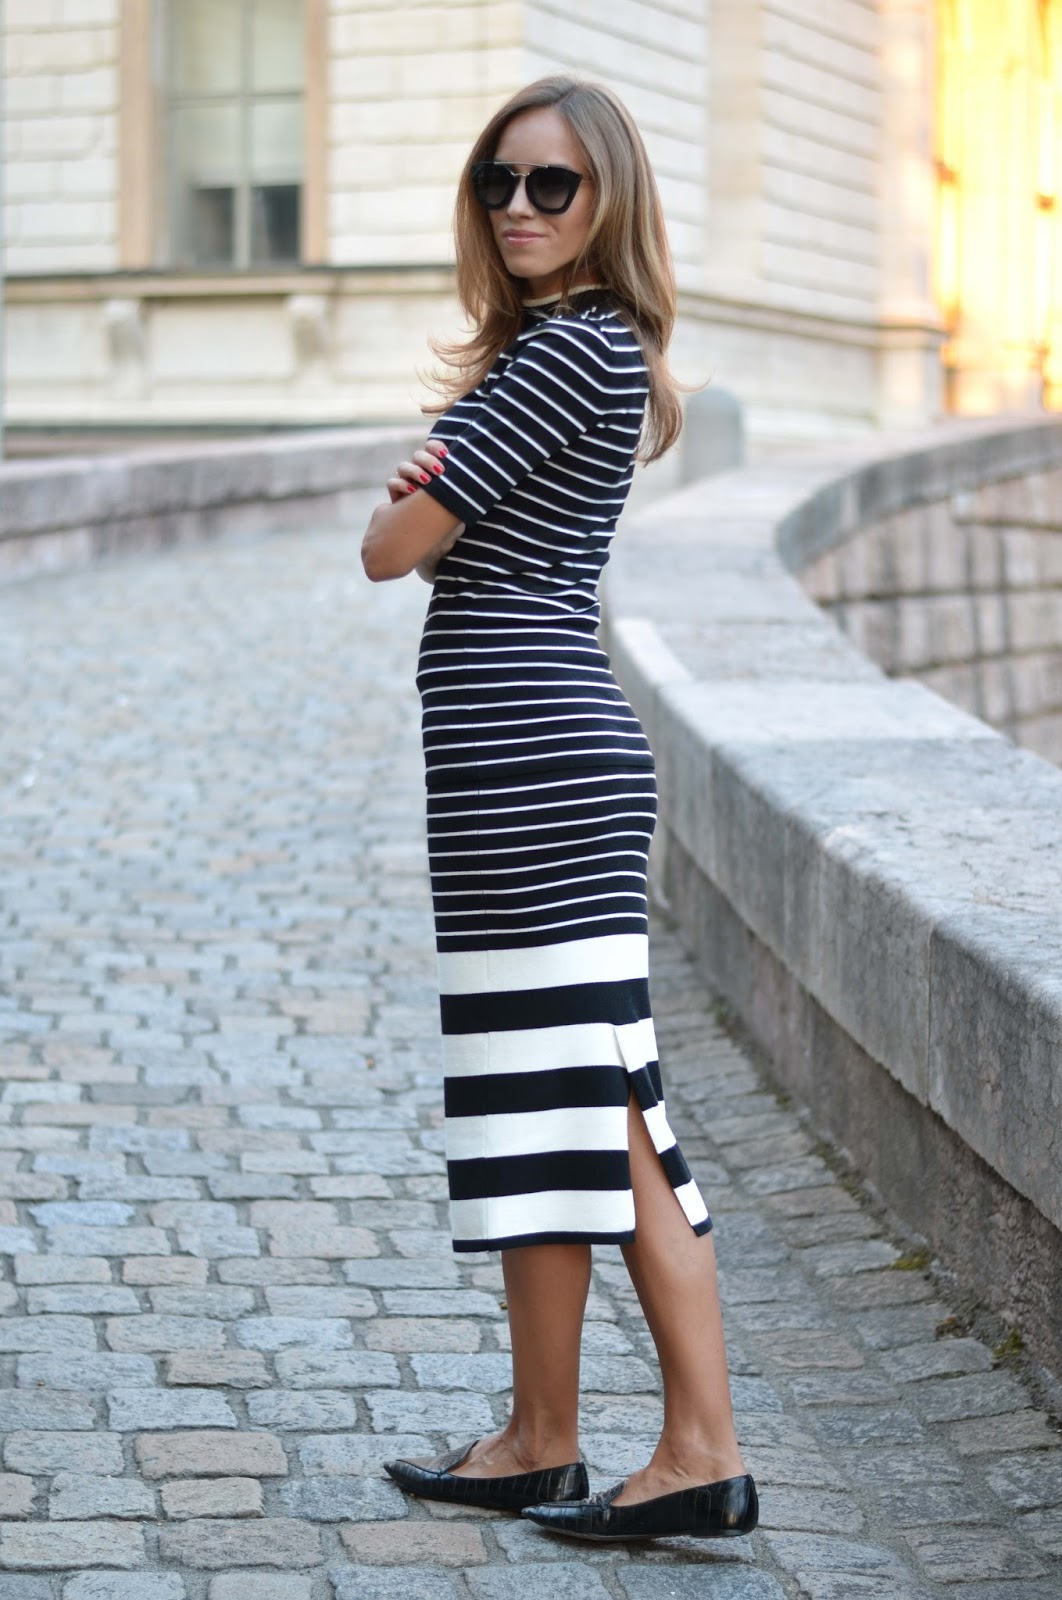 kristjaana mere hm black white striped knitted top skirt